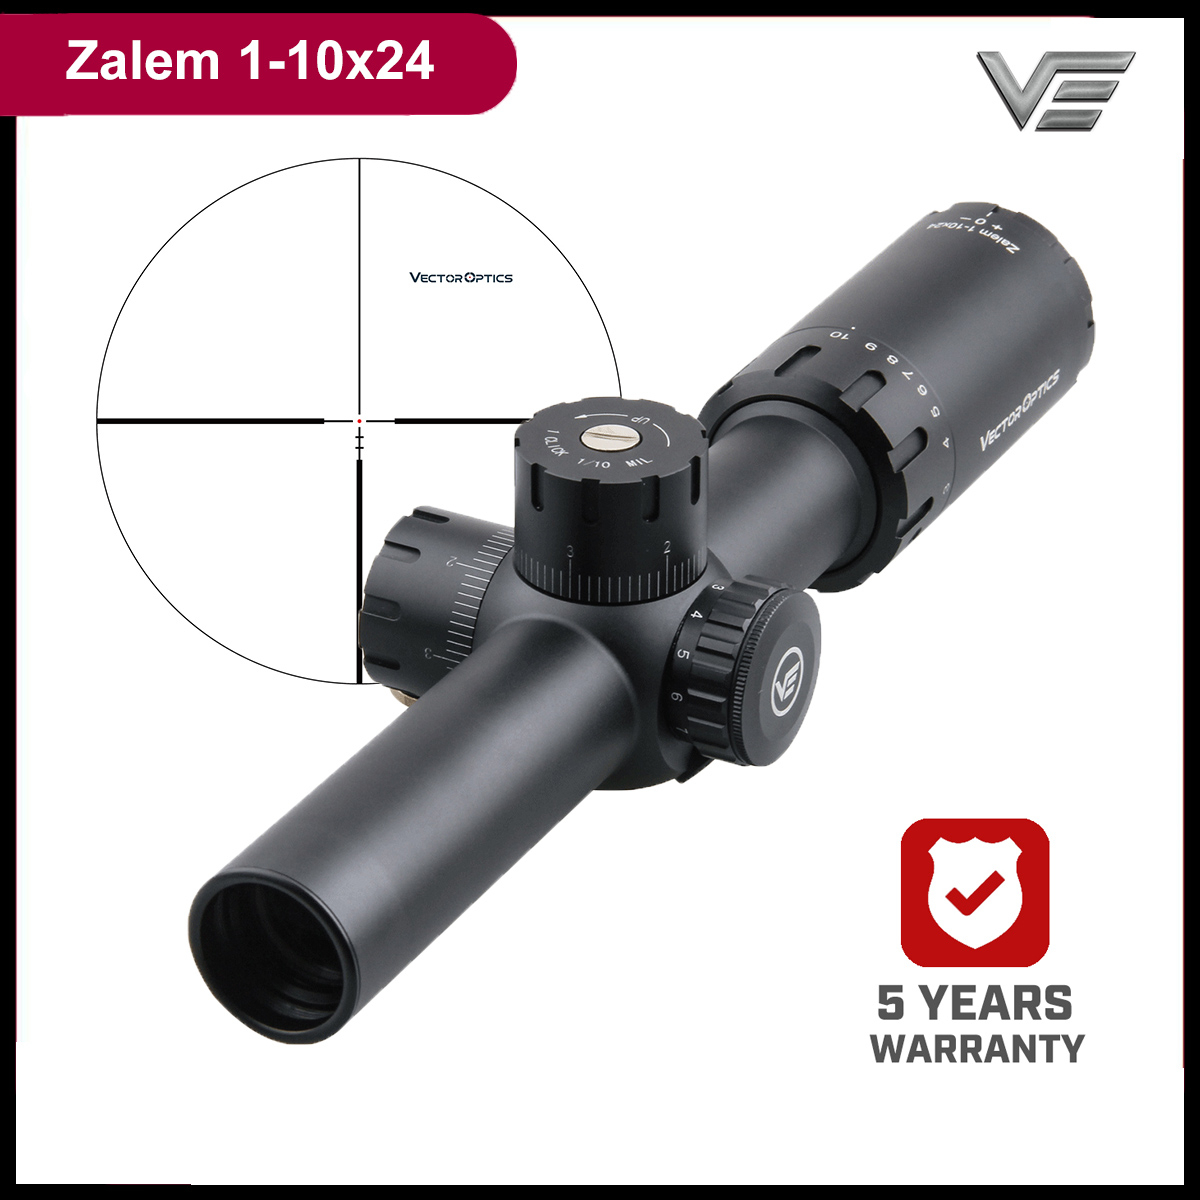 Vector Optics Zalem 1-10x24 10x Zoom Tactical Rifle Scope With BDC ASR 1/10MIL For AR15 308Win Close Mid-Range Shooting Hunting